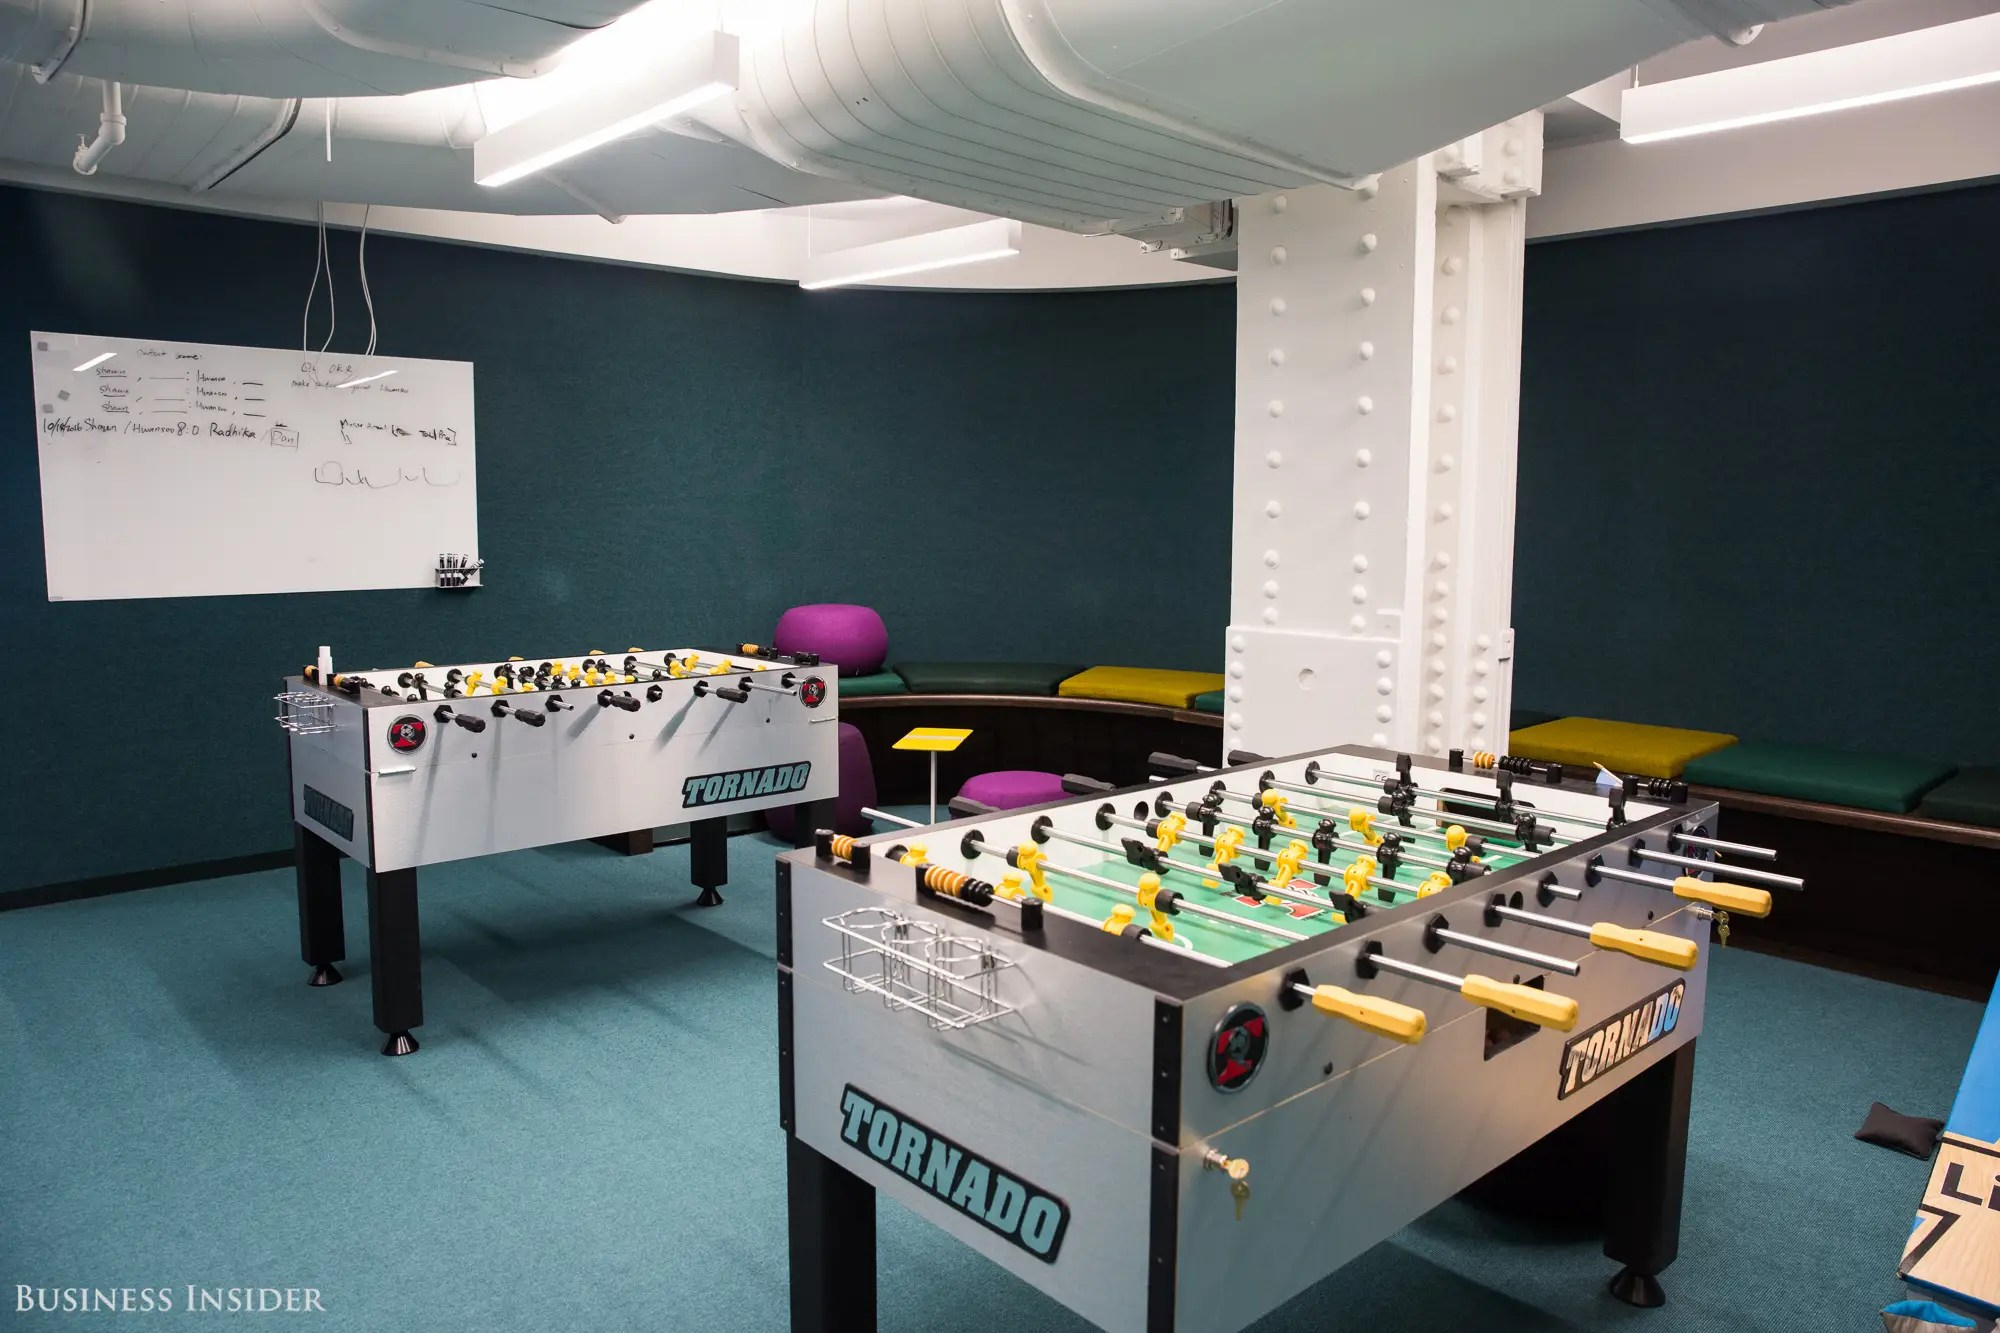 """Throughout the tour, we encountered some other cool perks — like a pool table, foosball tables, and a karaoke machine. Apparently, karaoke battles between LinkedIn offices — fought out over video chats — can get pretty competitive. """"What we really want to do is get people together from different departments and different teams to form relationships,"""" Campofelice says. """"We're really creating a more collaborative environment."""""""